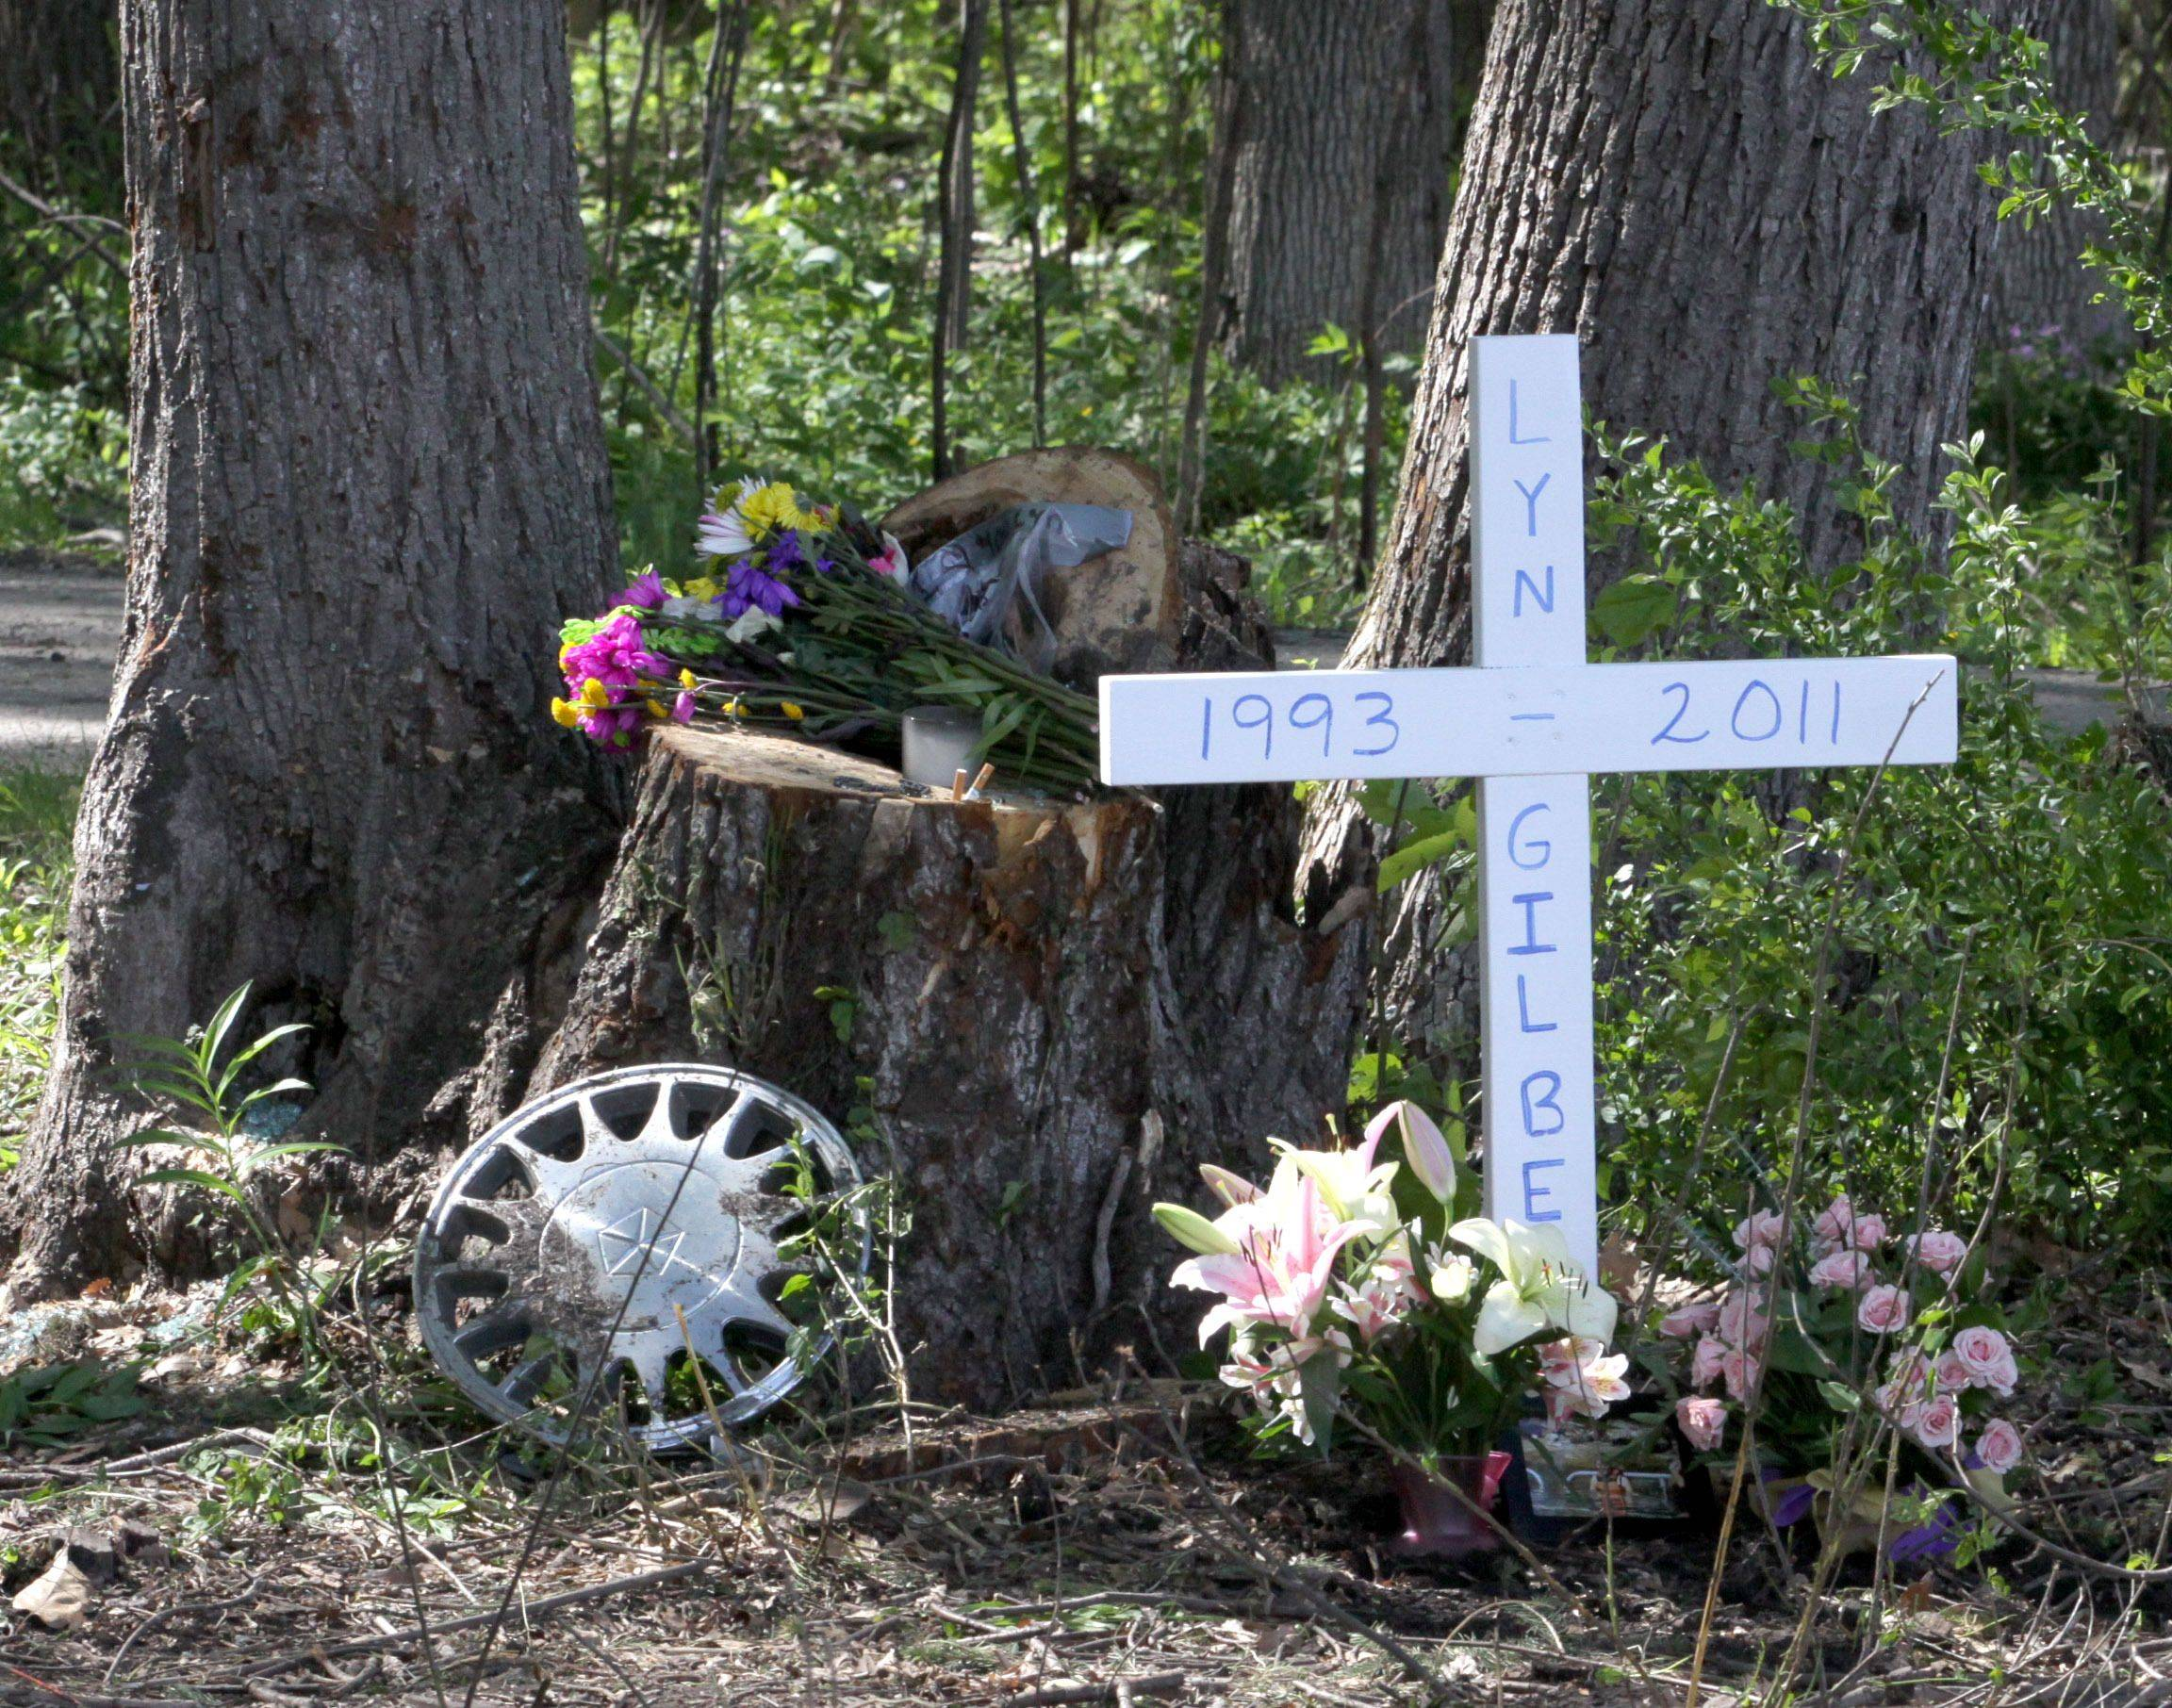 Kane County considers speed limit change on road where teen died